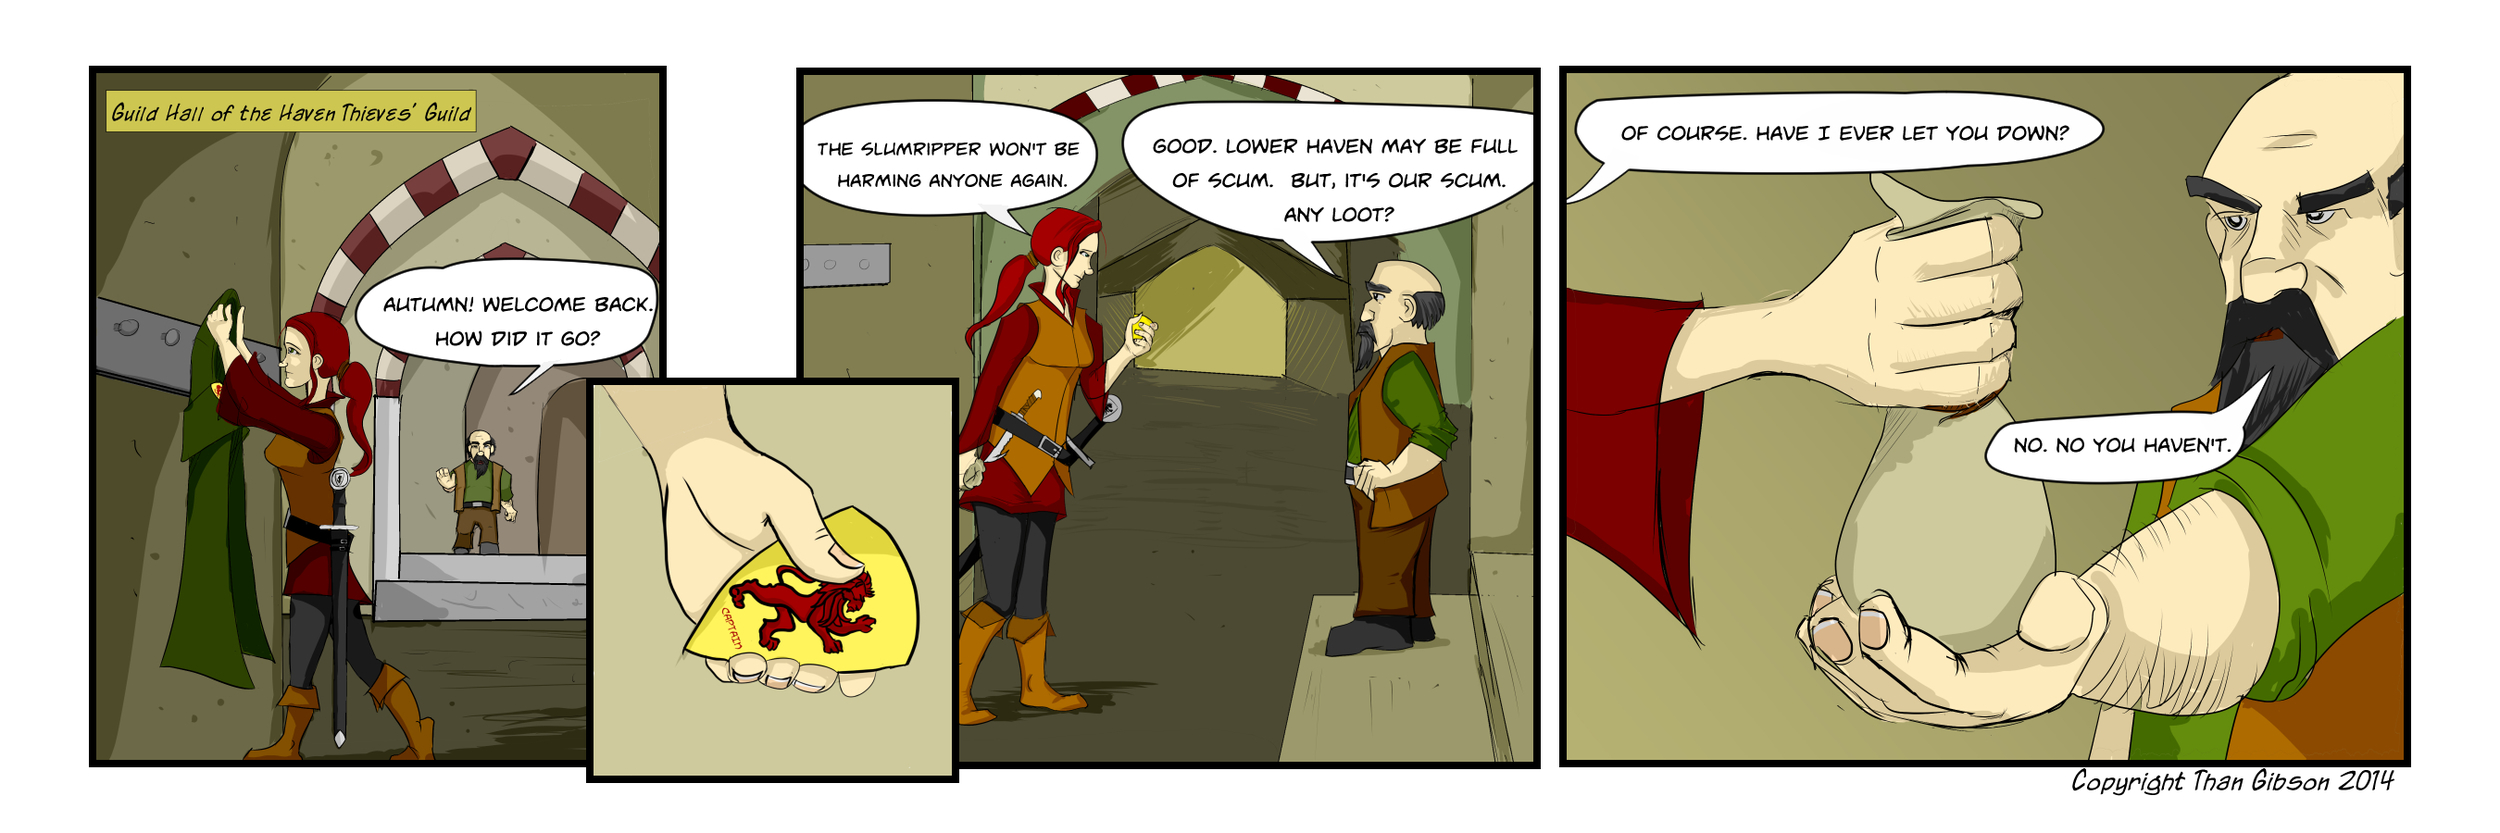 Strip 6 - Click the image for a larger view!